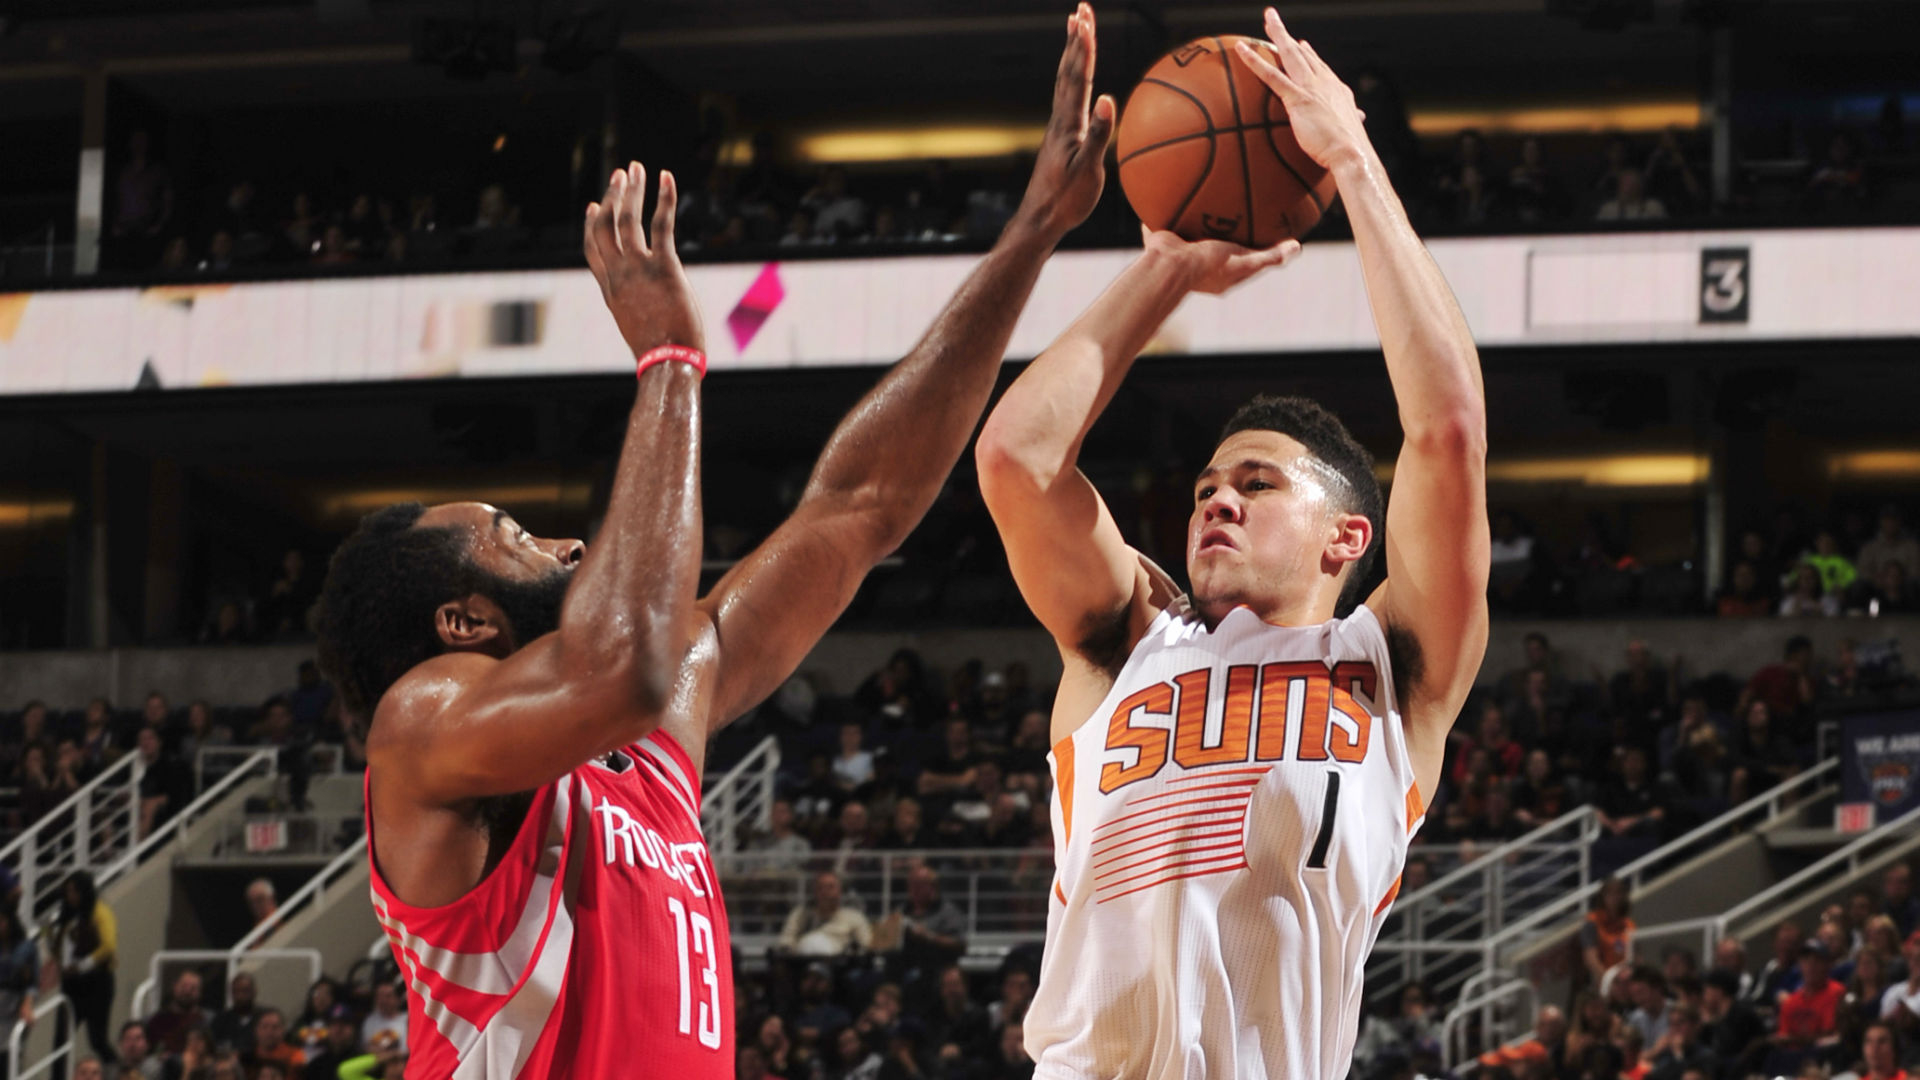 Devin Booker has taken a page out of James Harden's playbook — and it's working